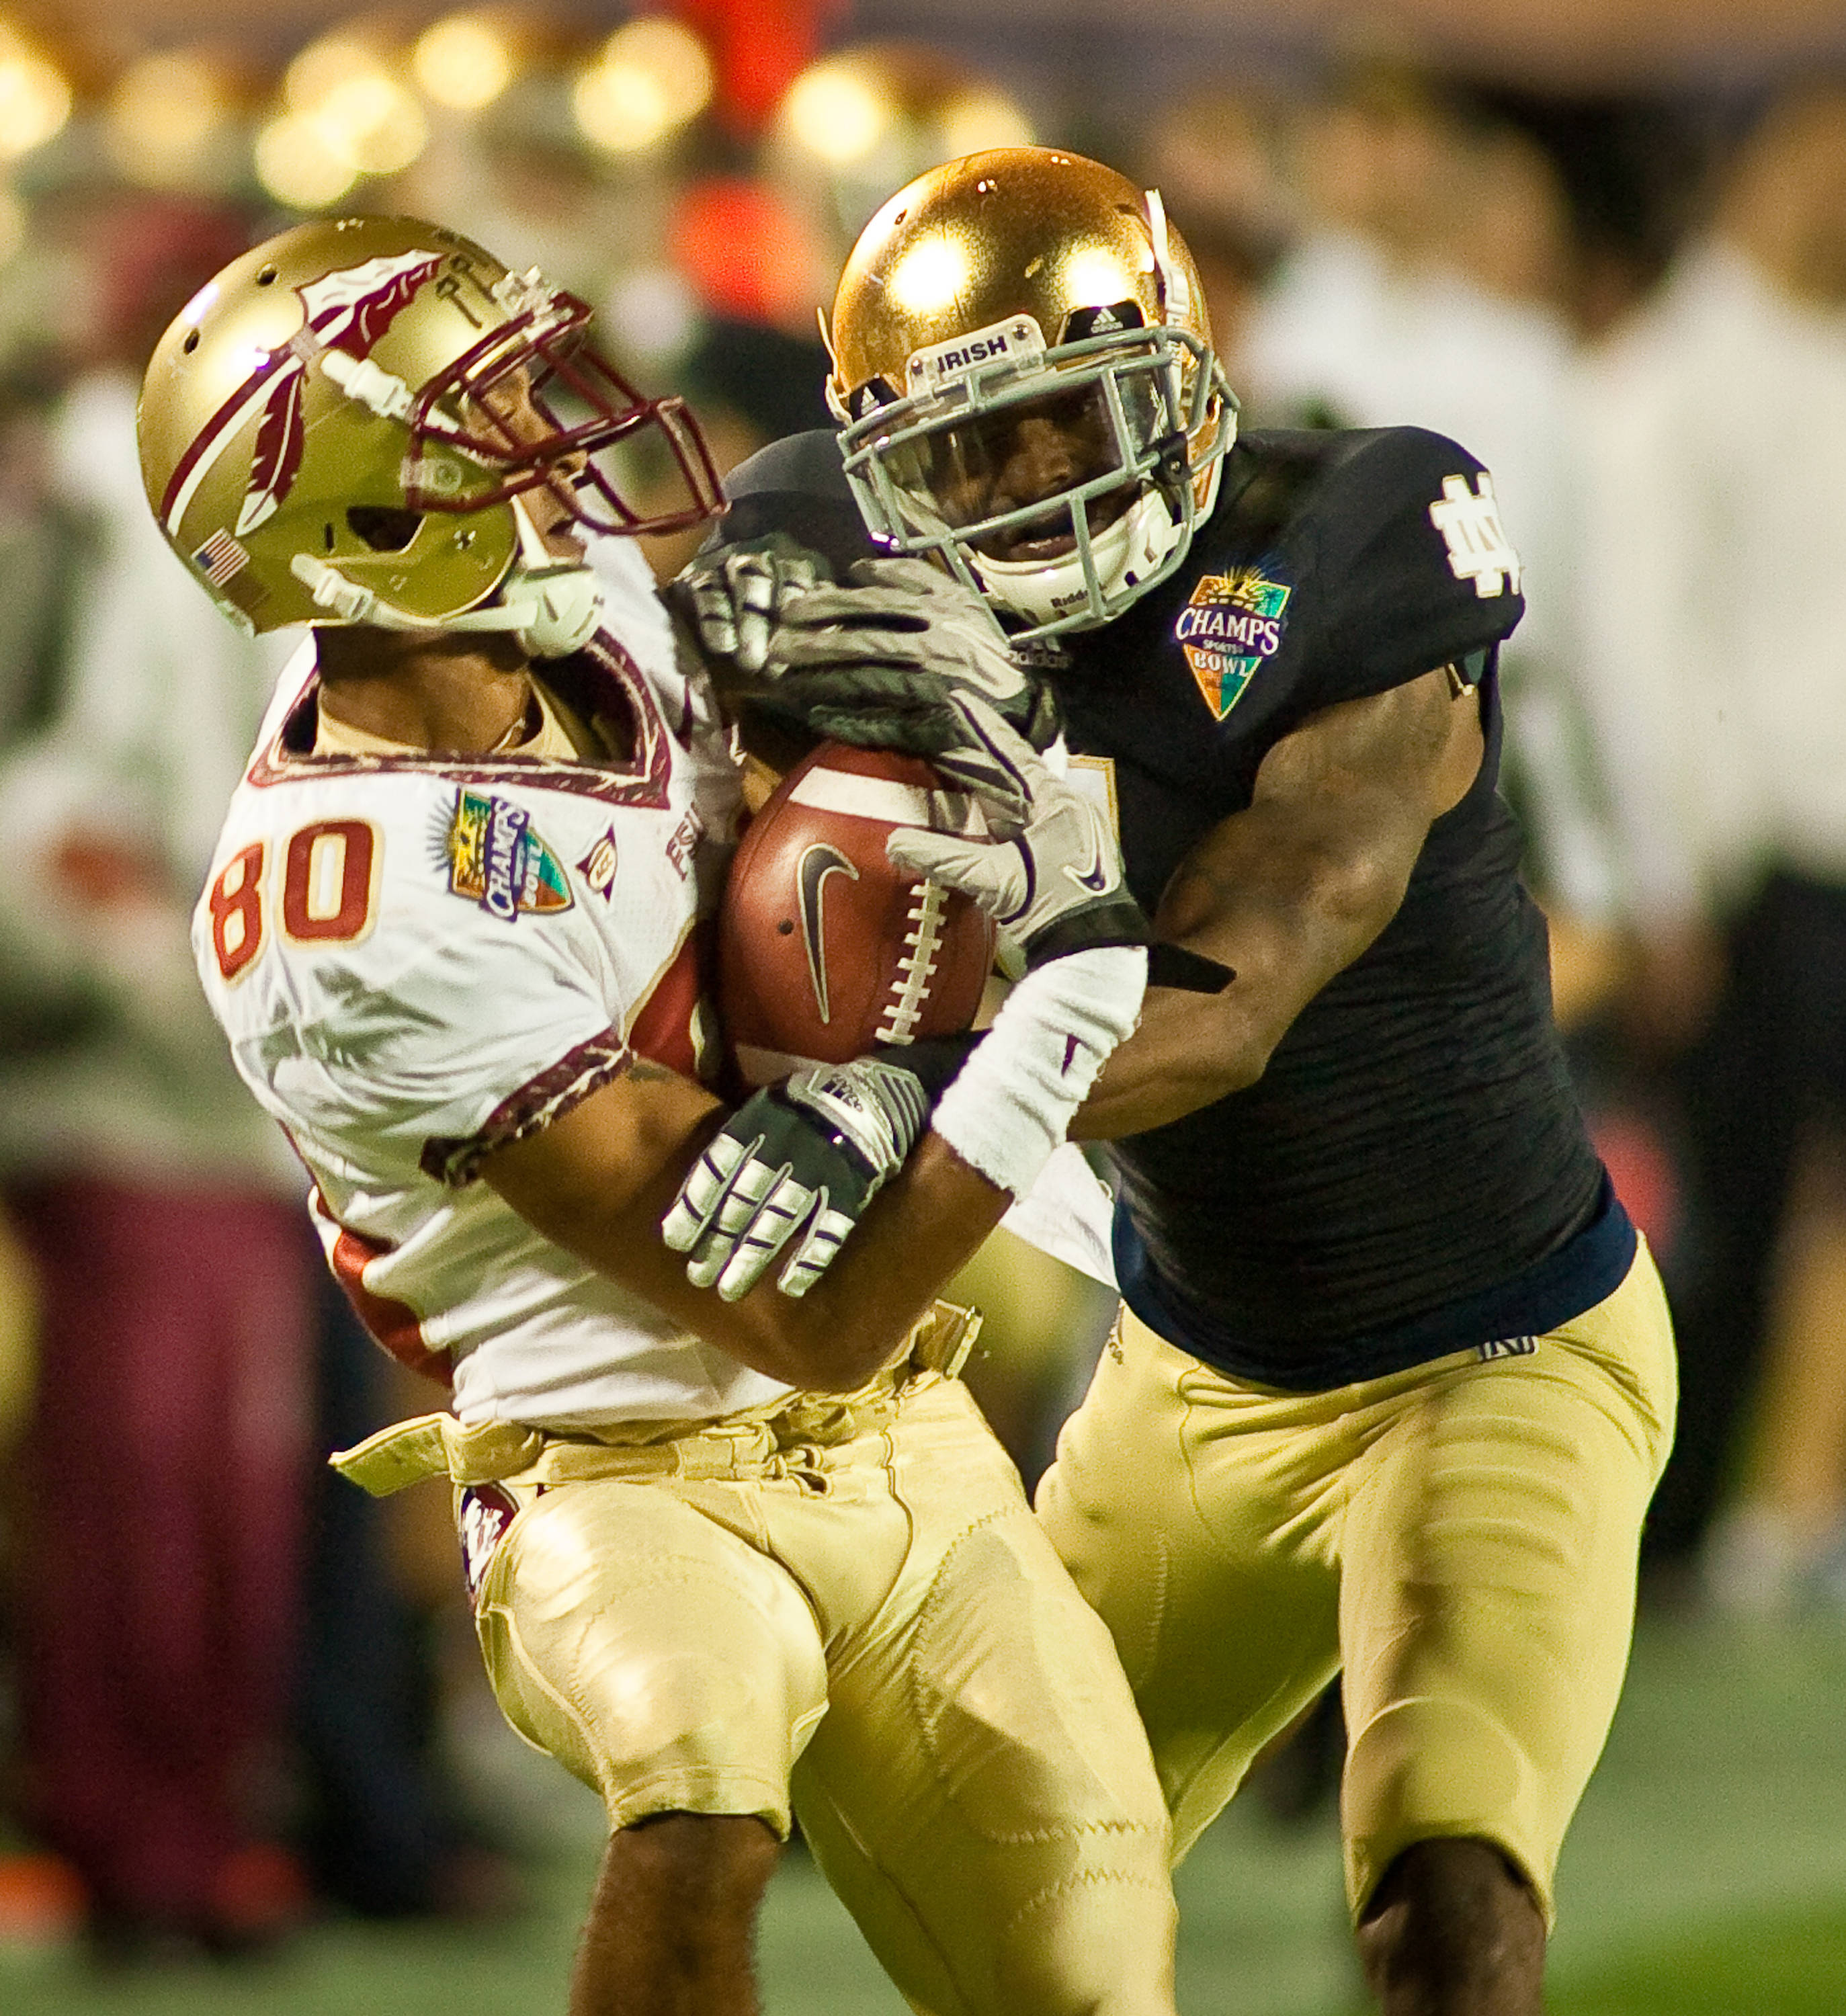 Rashad Greene hauls in a ball in the fourth quarter.